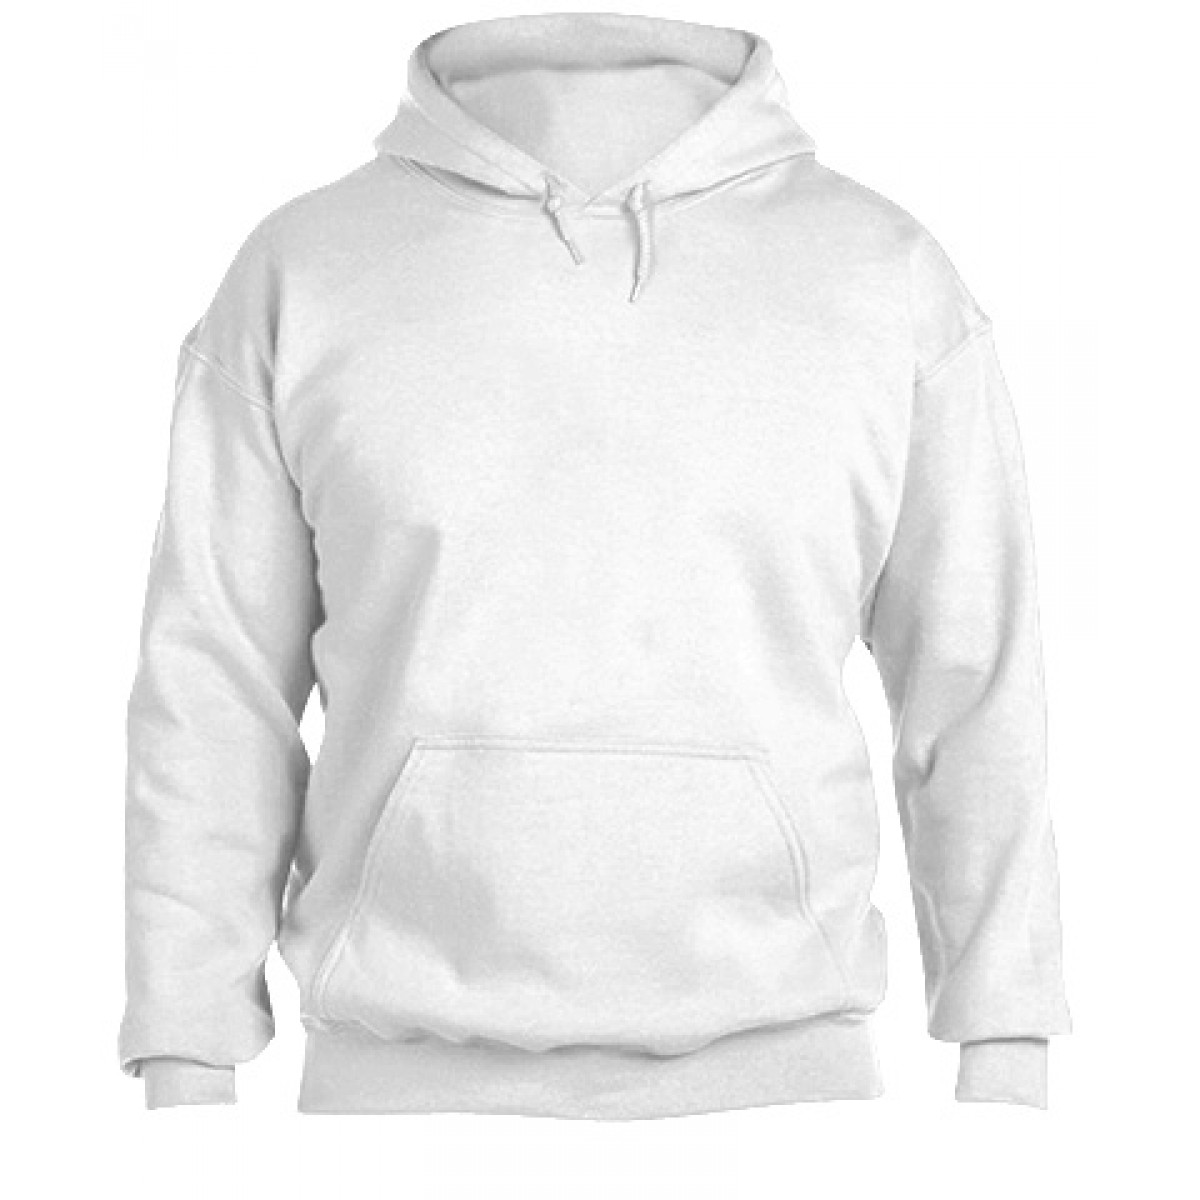 Hooded Sweatshirt 50/50 Heavy Blend-White-2XL